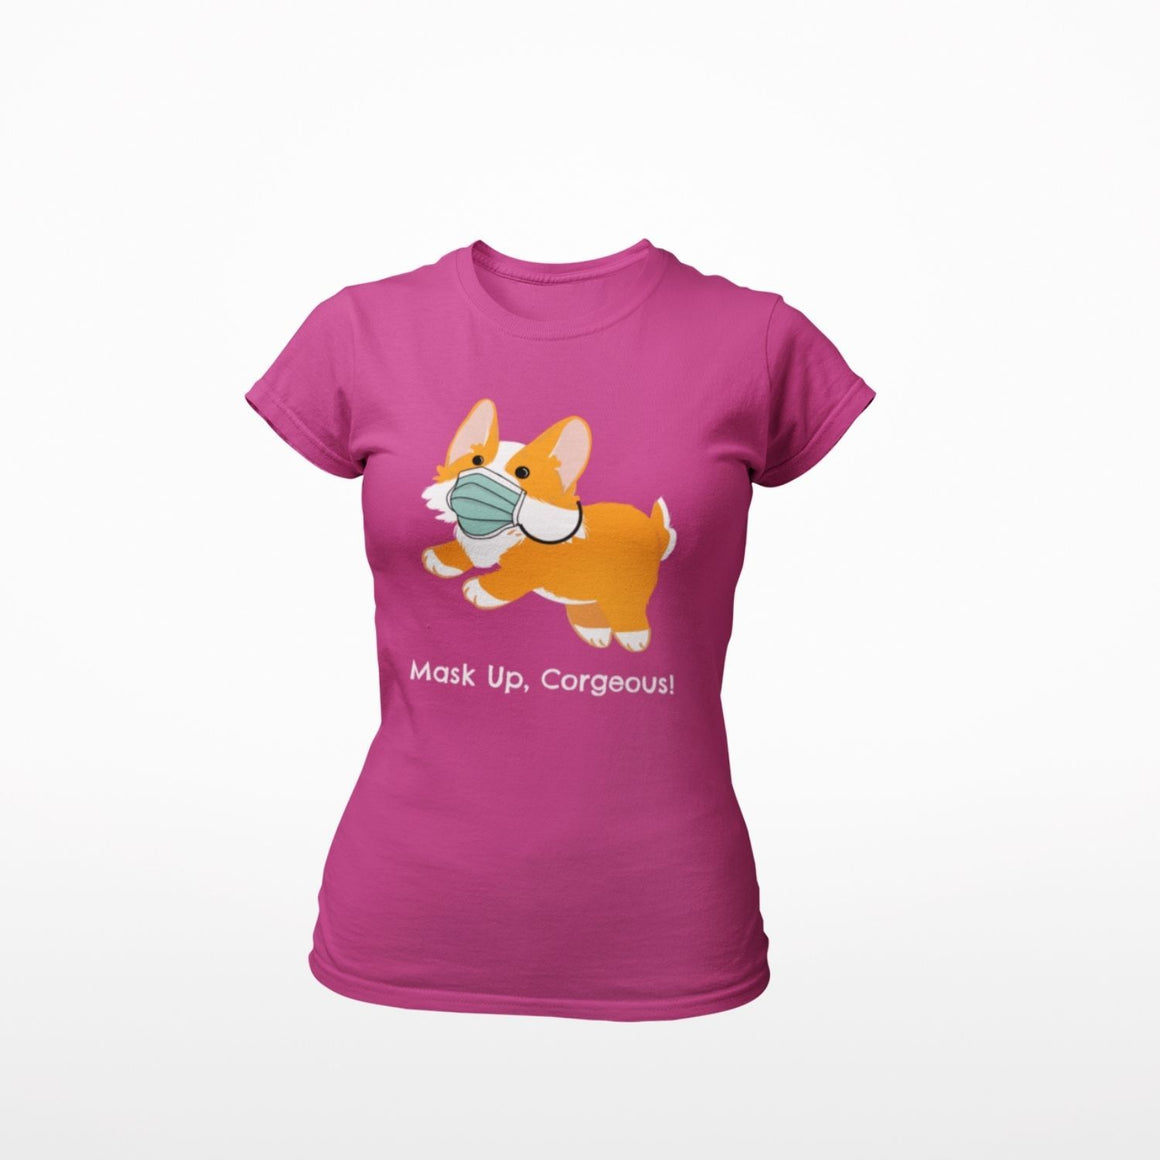 Mask Up Corgeous Ladies' Favorite T-Shirt - Cute Dose